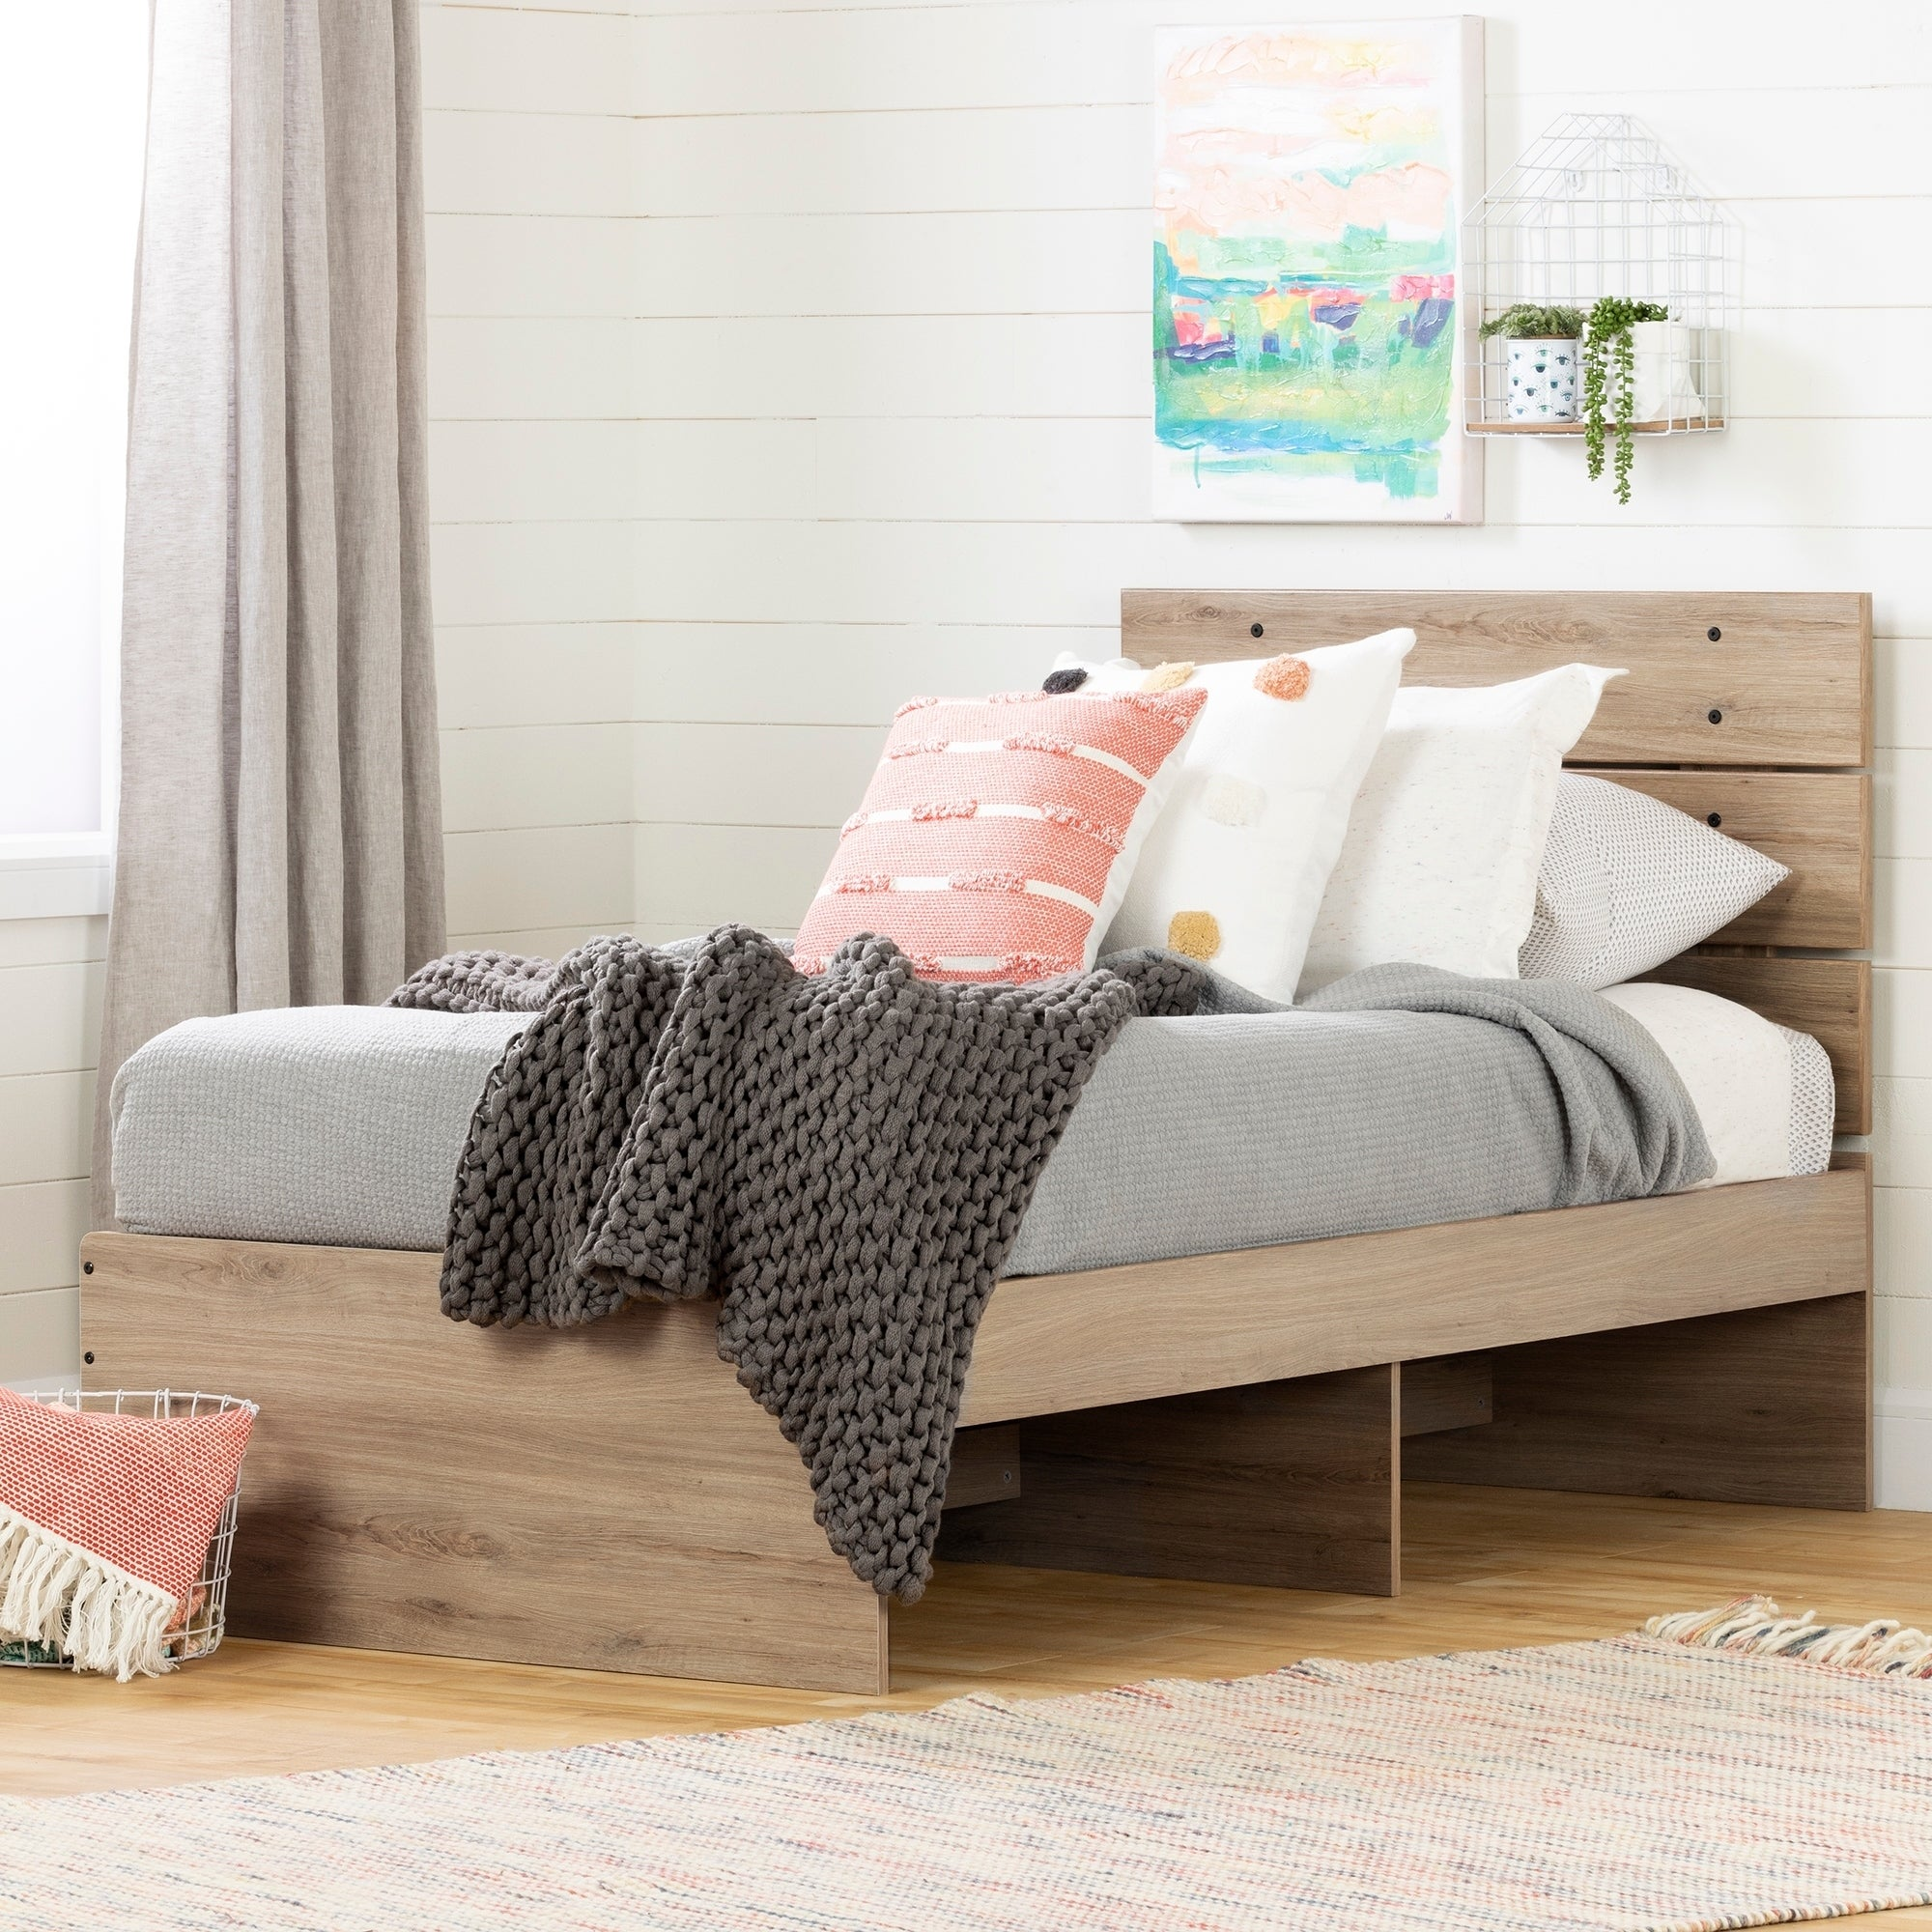 South Shore Fakto Bed Set - Bed and Headboard (Rustic Oak)